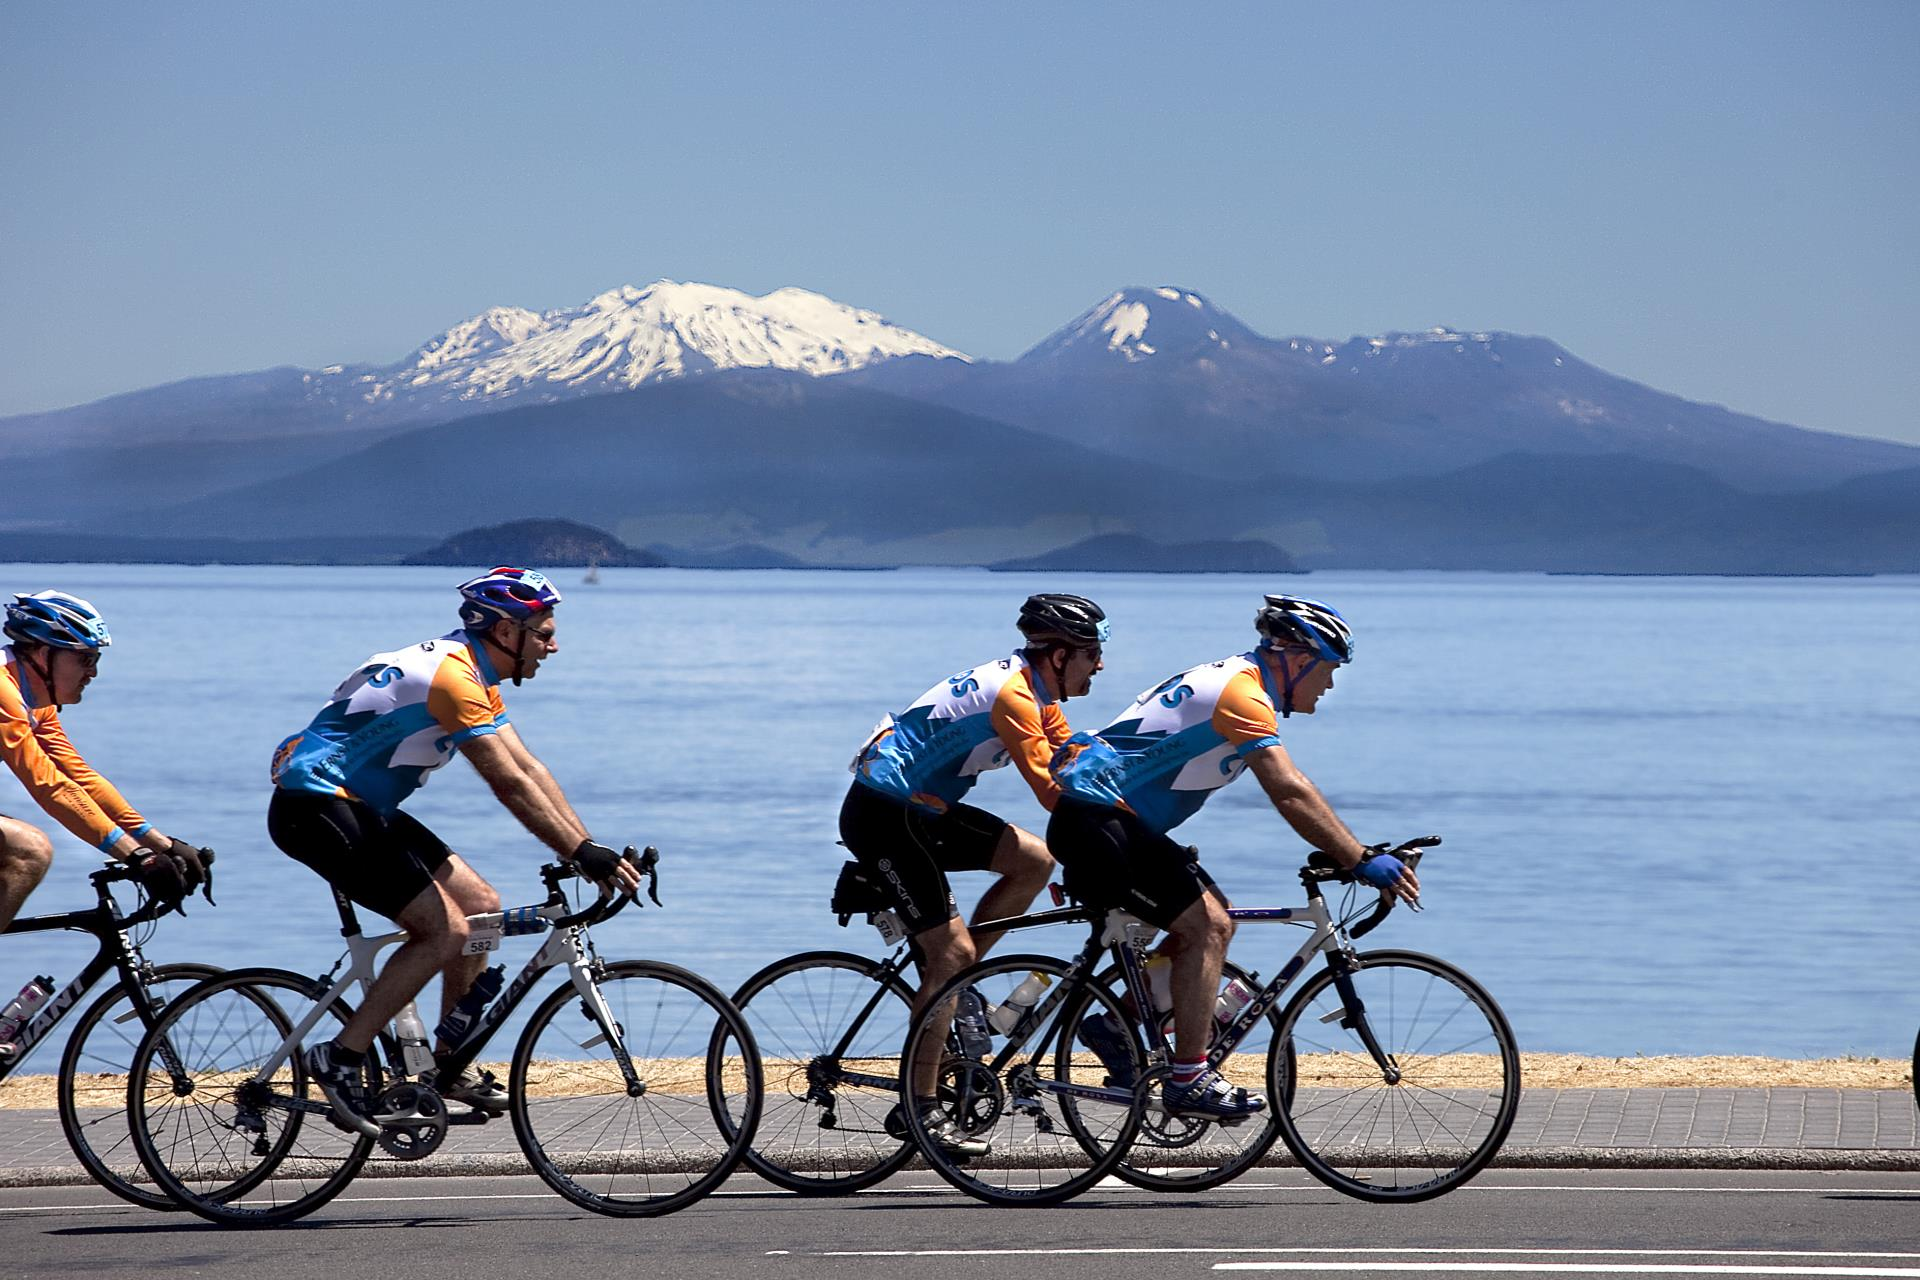 Lake Taupo New Zealand Activities and Attractions